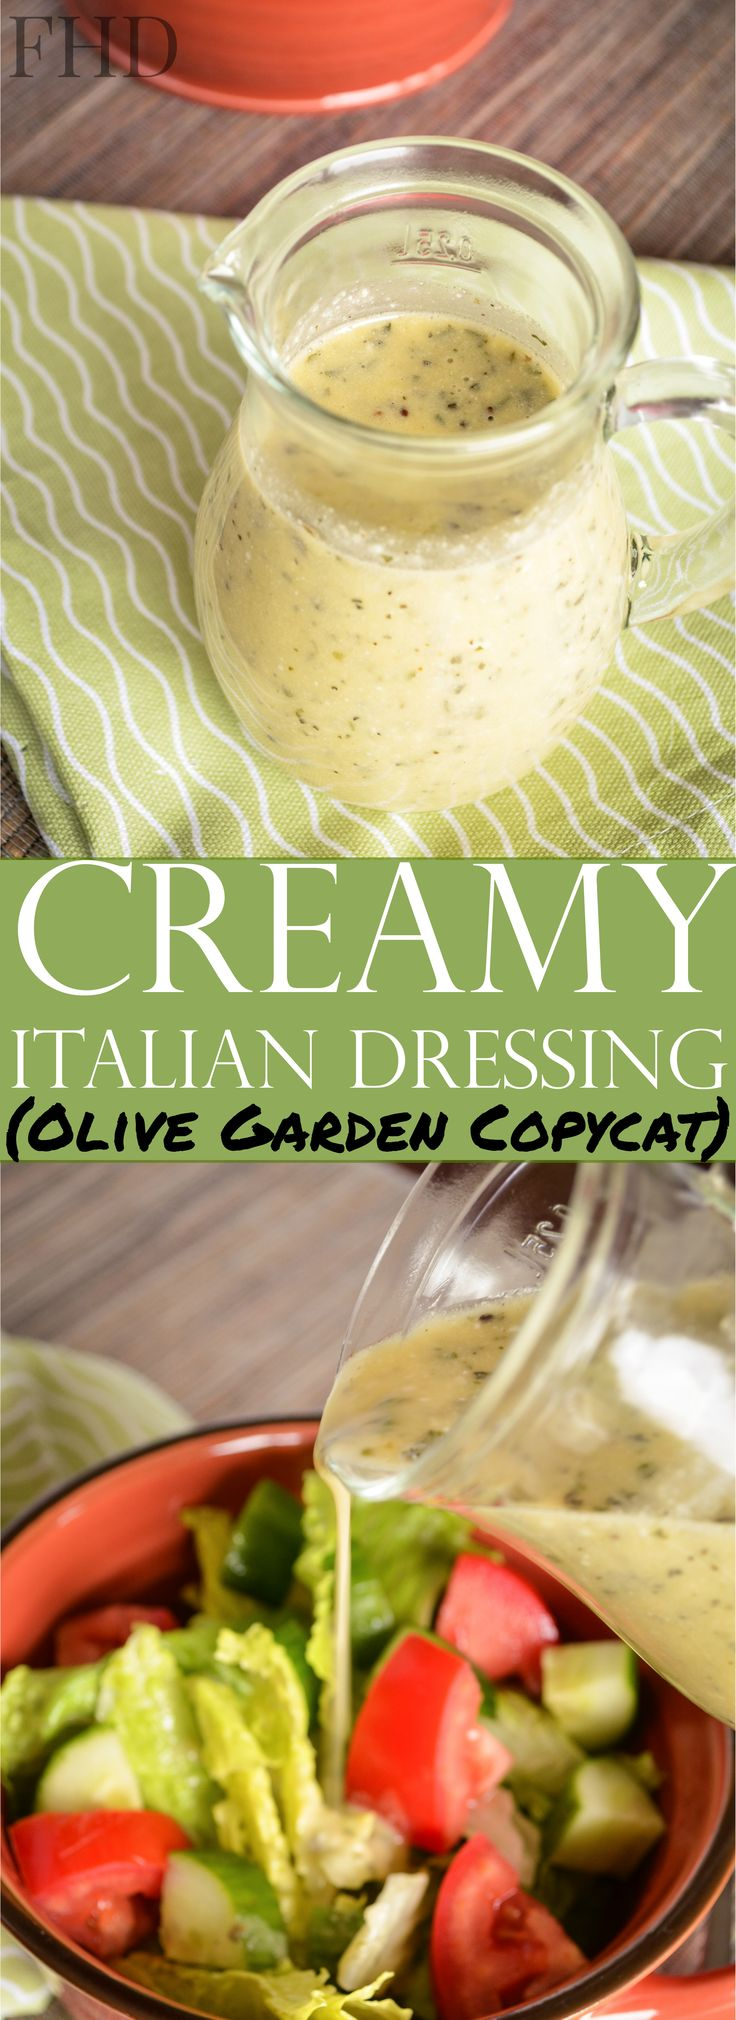 Low carb recipes, Olive garden dressing and Italian